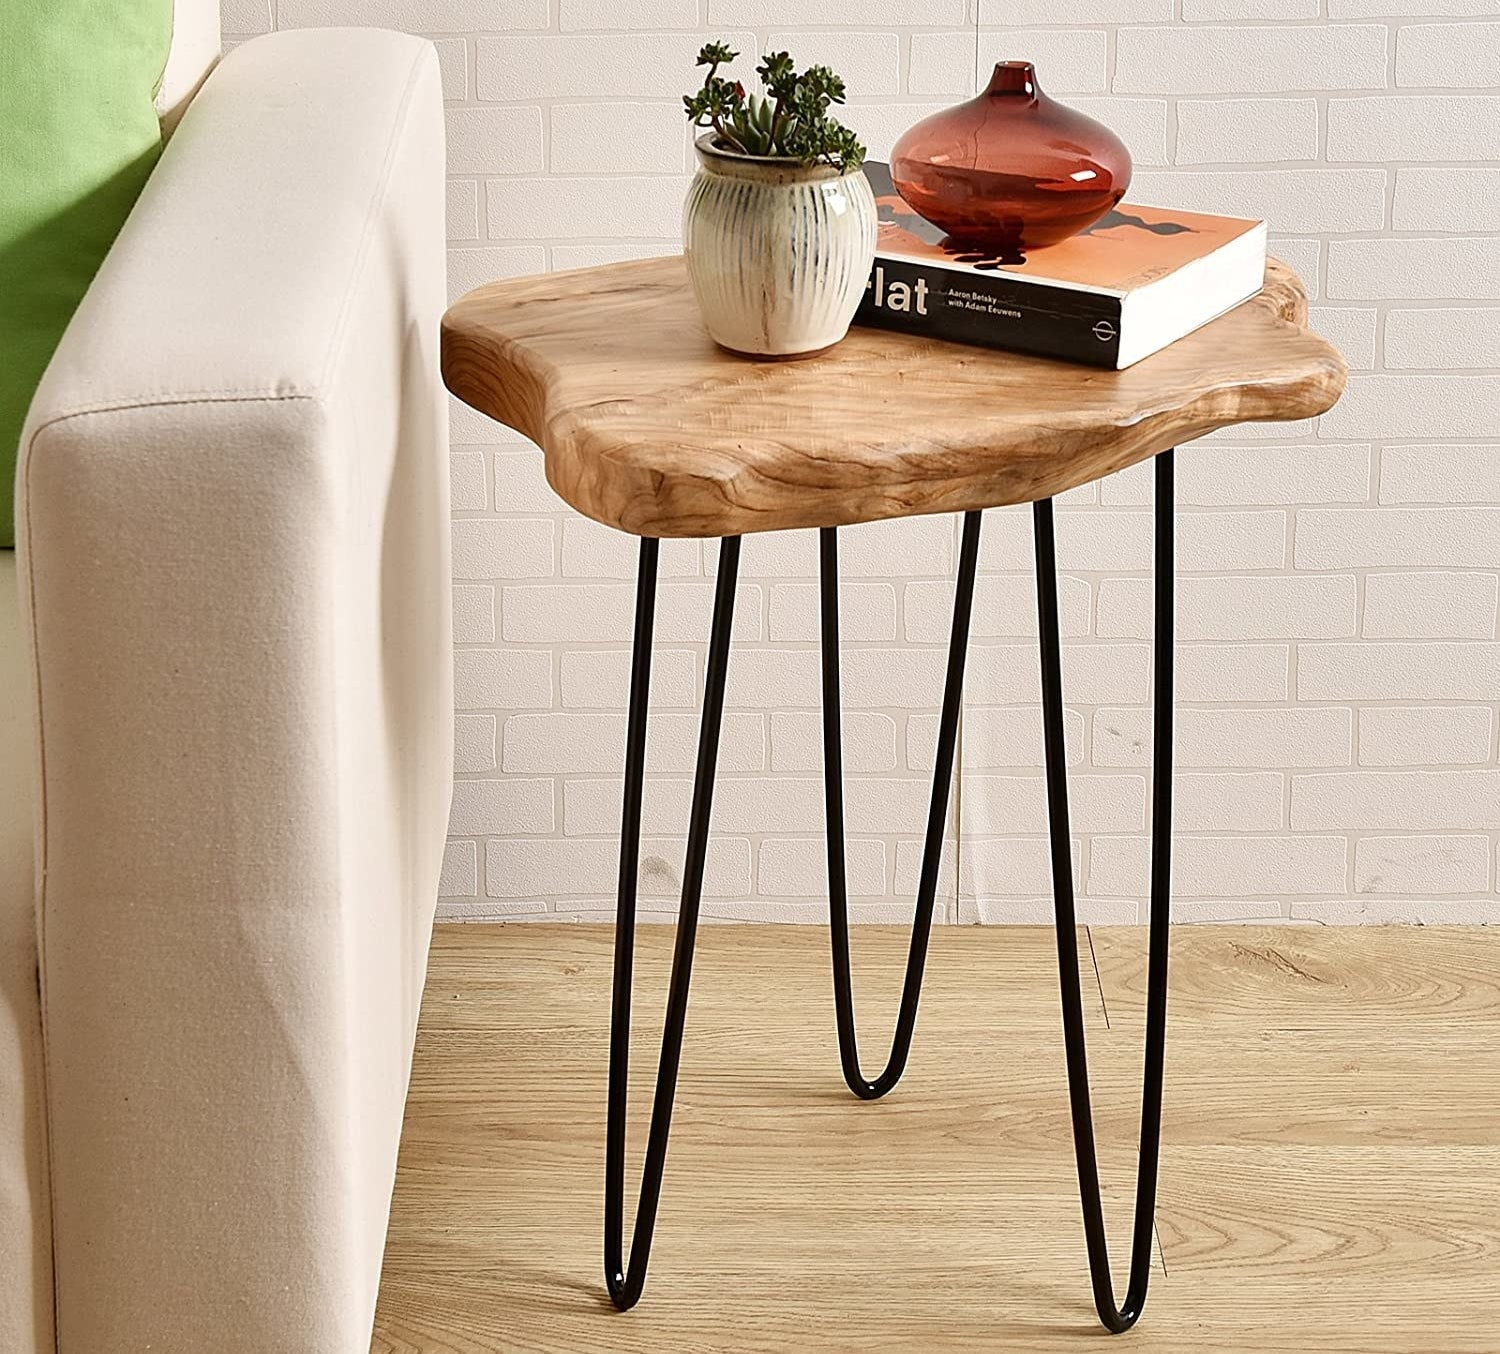 the side table with a natural edge wooden top with black steel legs